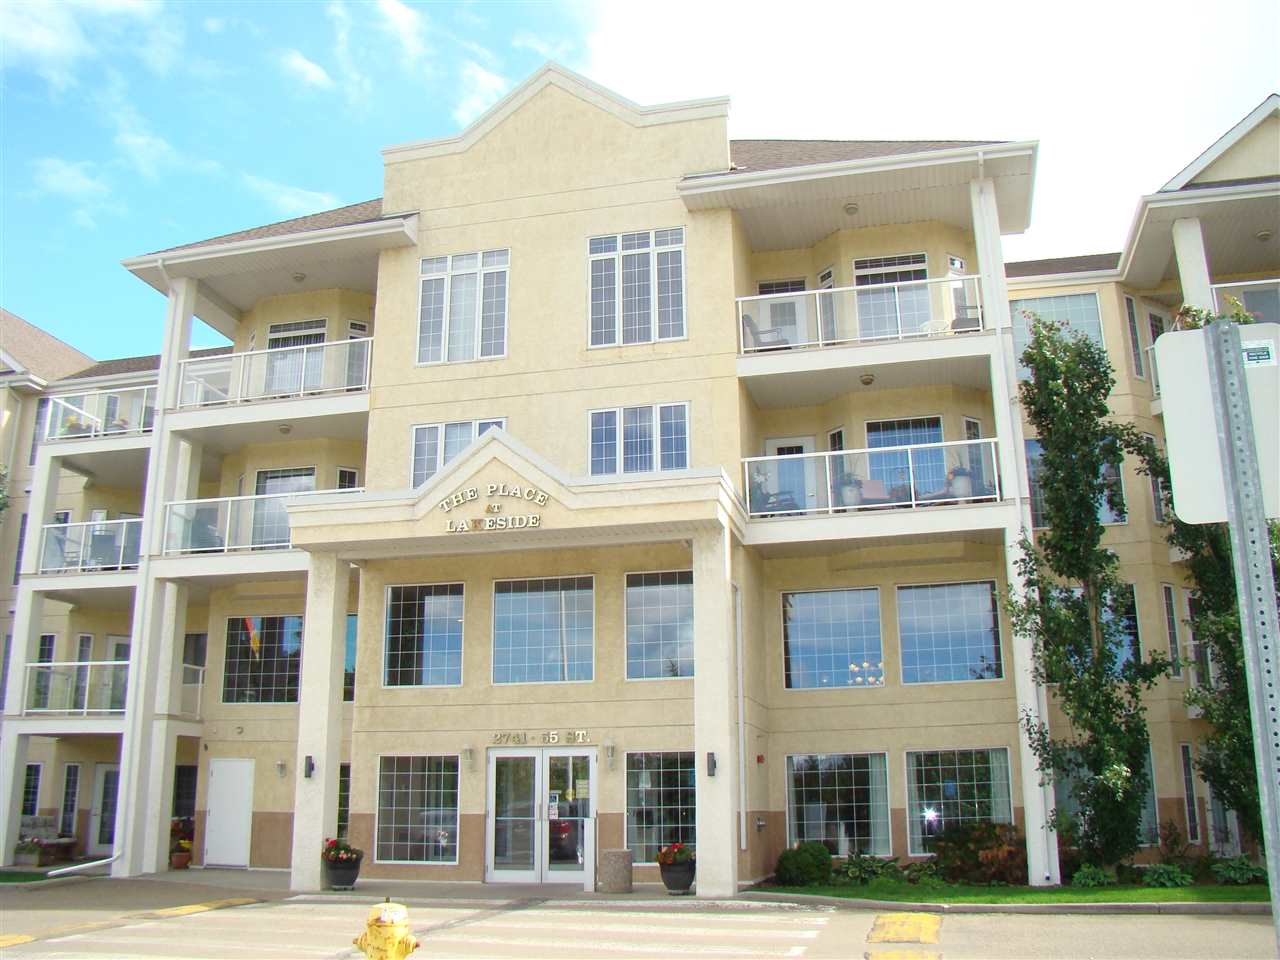 Main Photo: 232 2741 55 st NW in Edmonton: Zone 29 Condo for sale : MLS(r) # E4070471